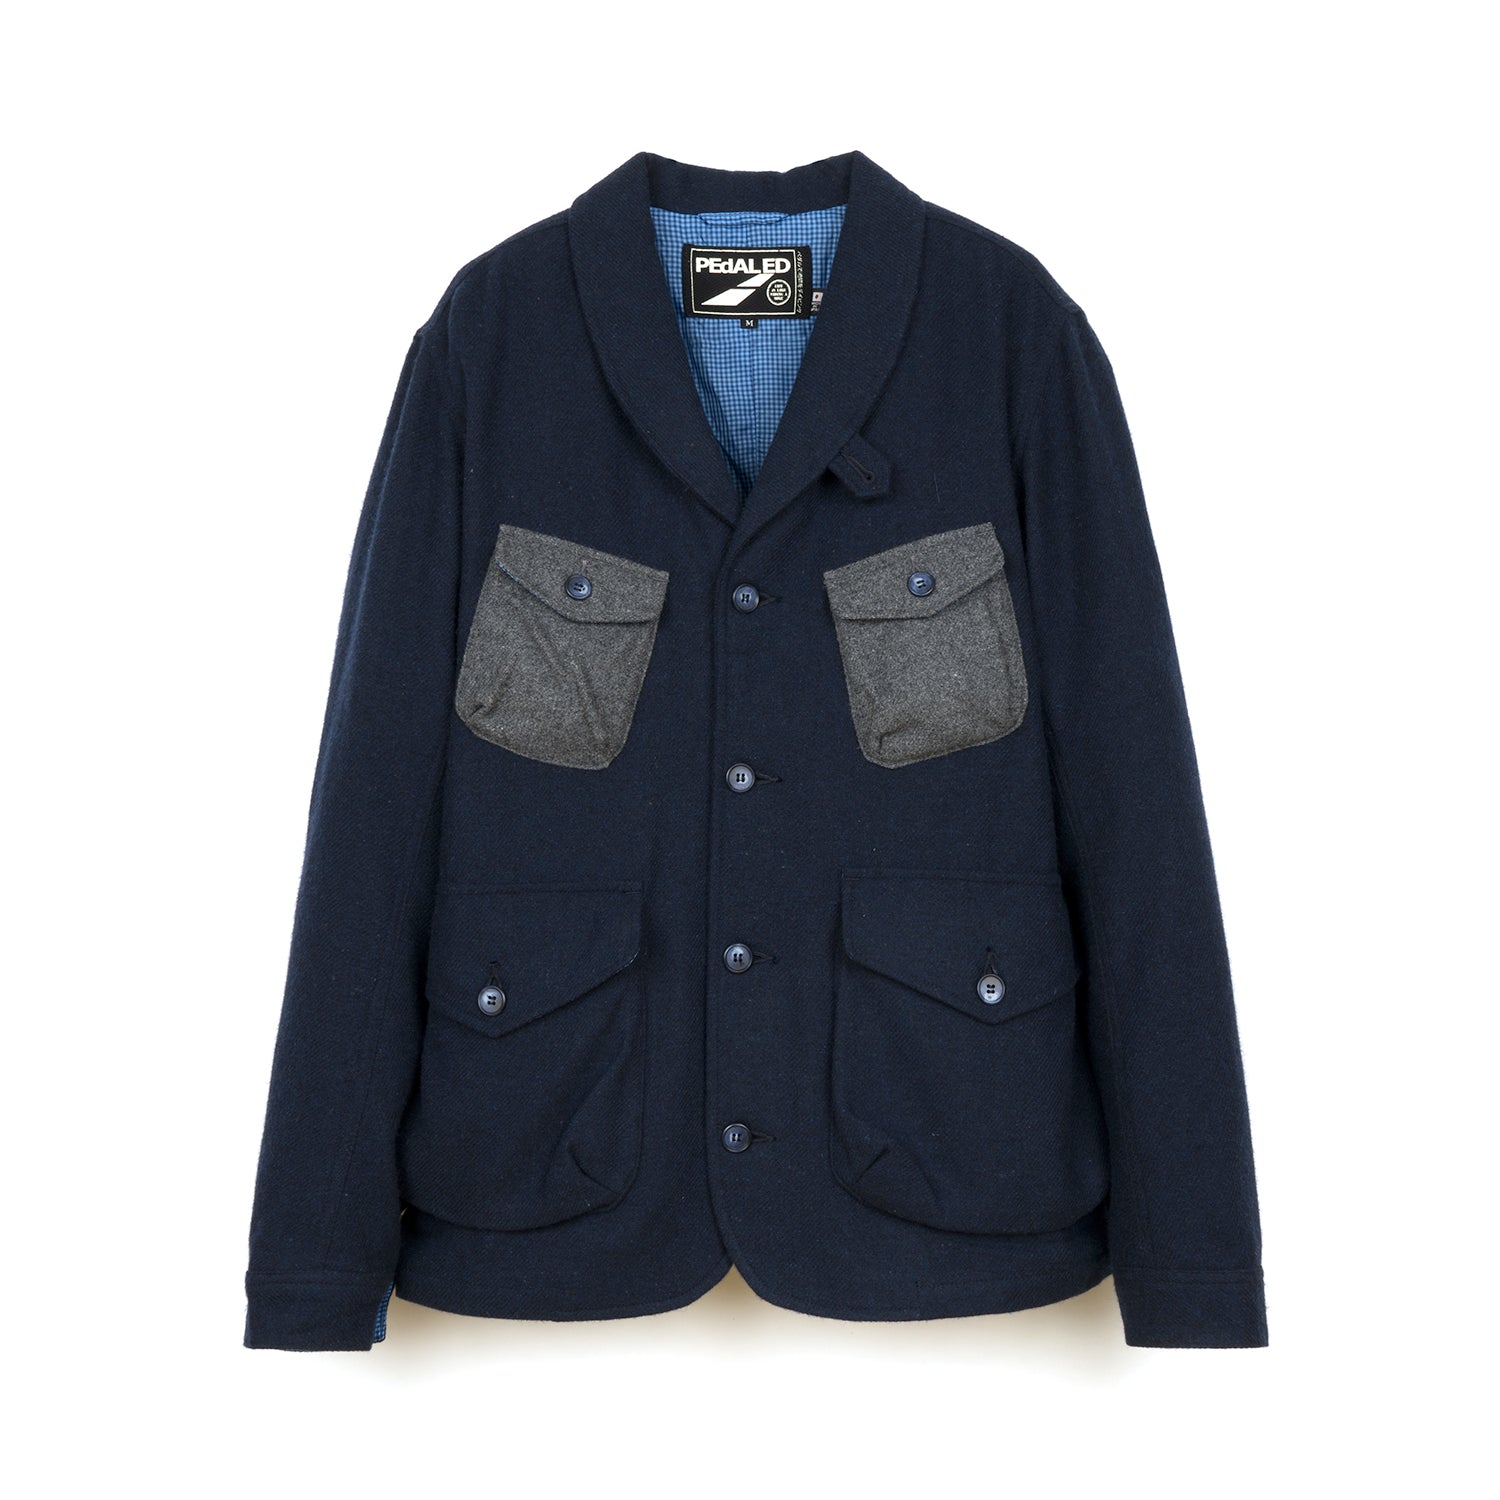 PEdALED Hacking Jacket Navy